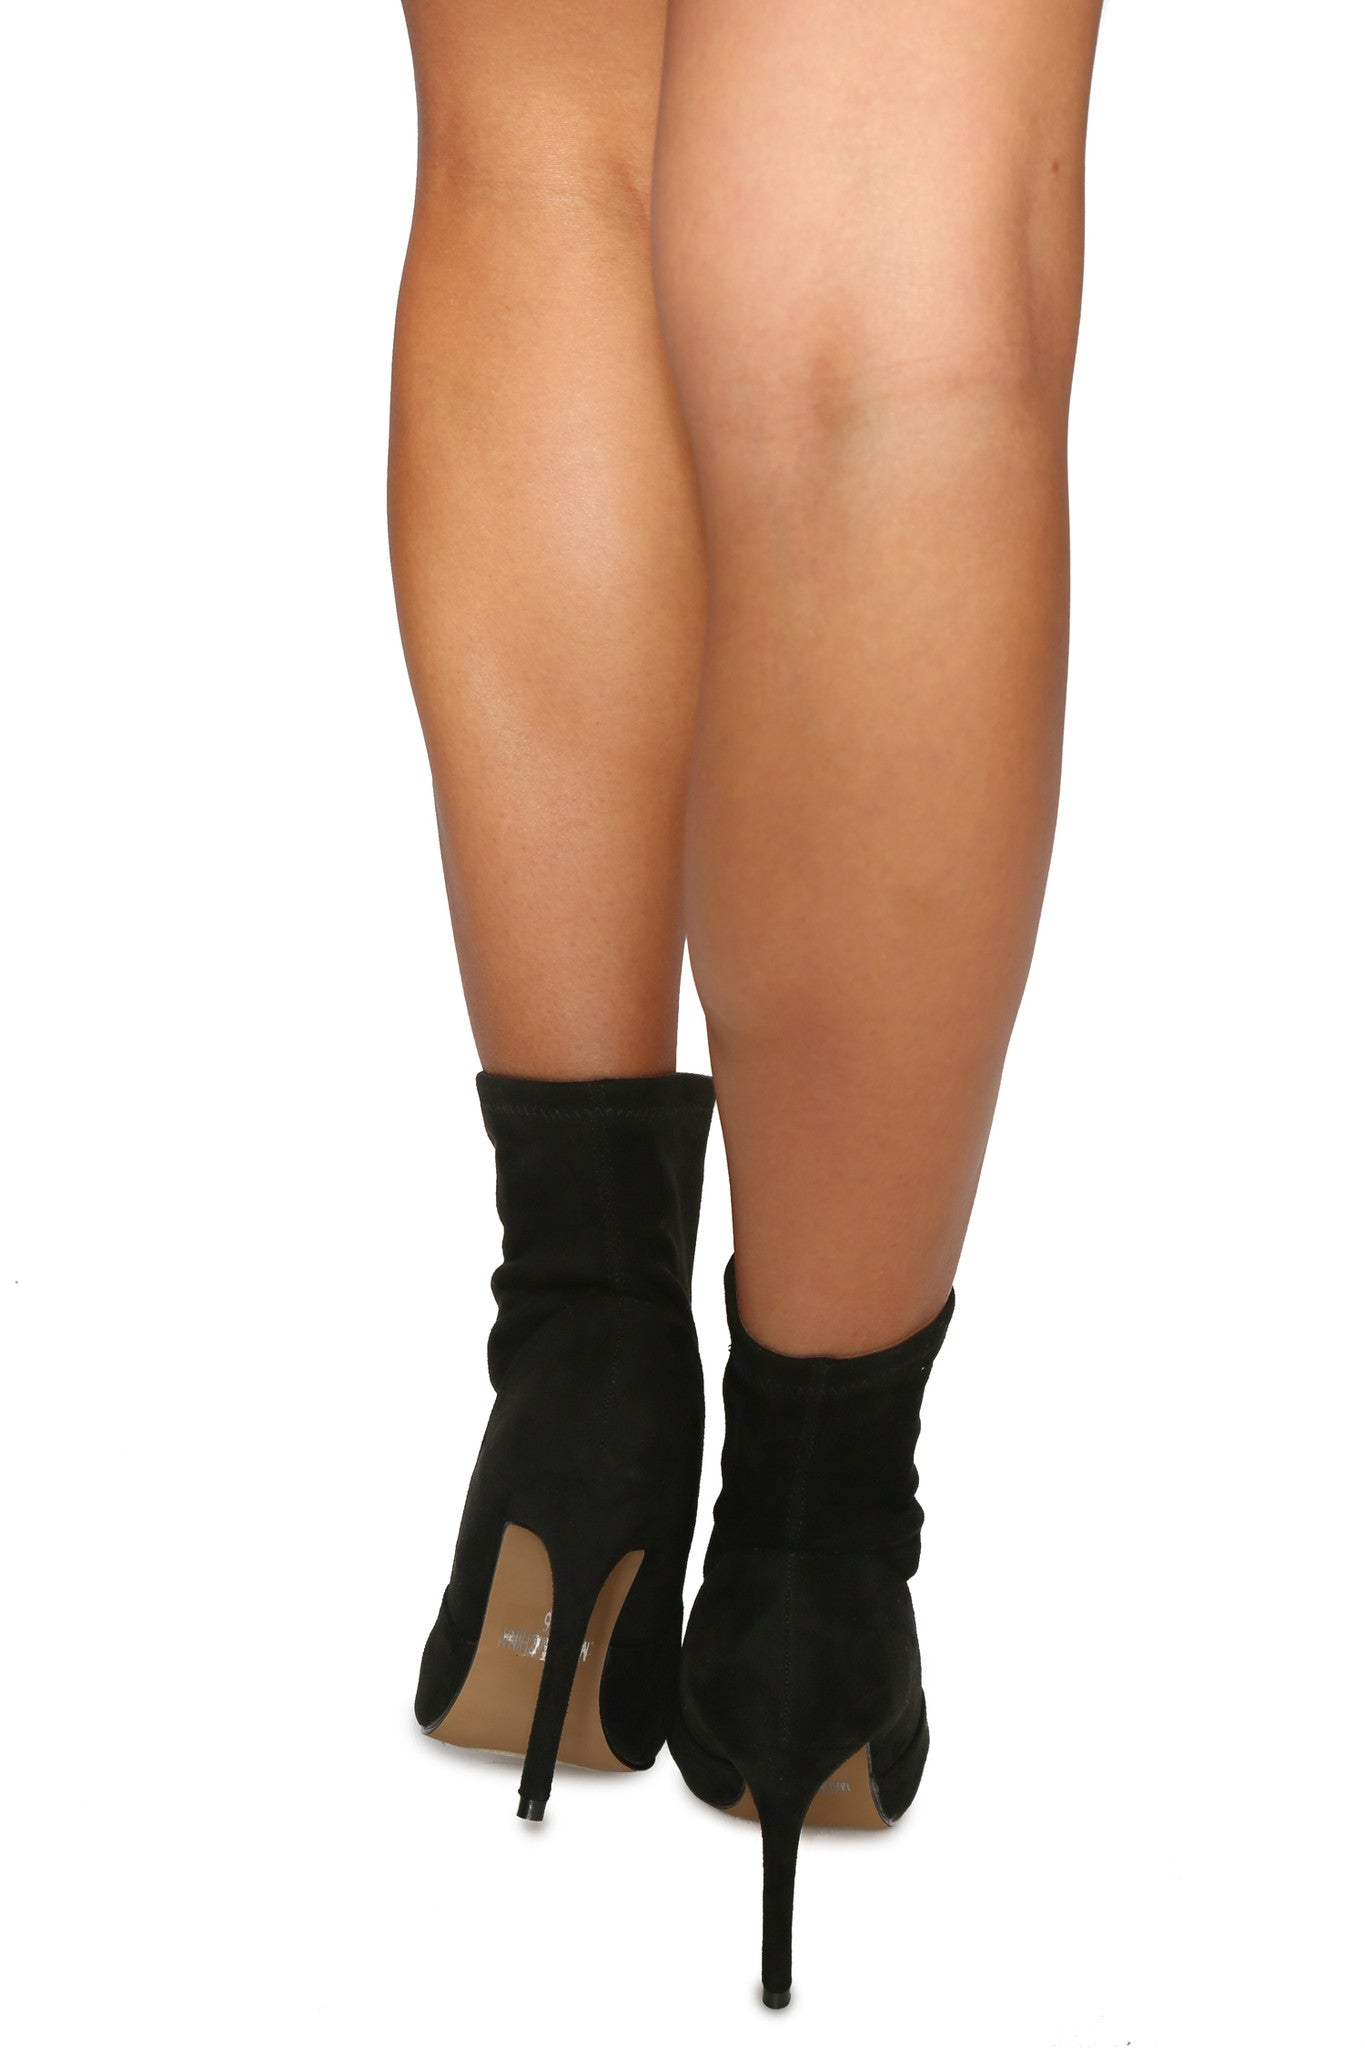 ARIANNA BOOTIES - Glam Envy - 3